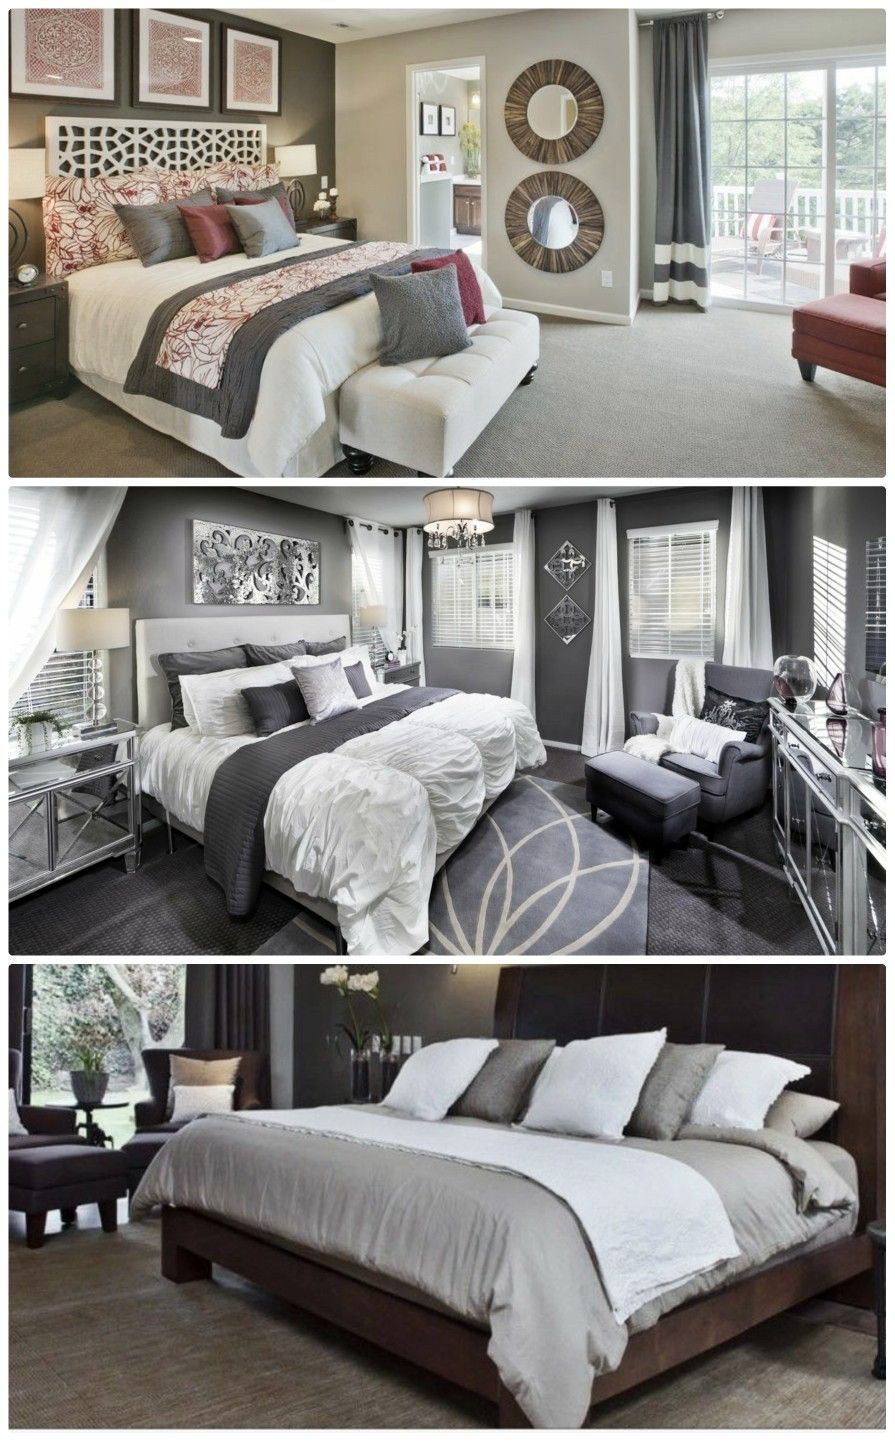 Most Romantic Bedroom Decor: Best Modern Bedroom Design Ideas For Romantic Couples